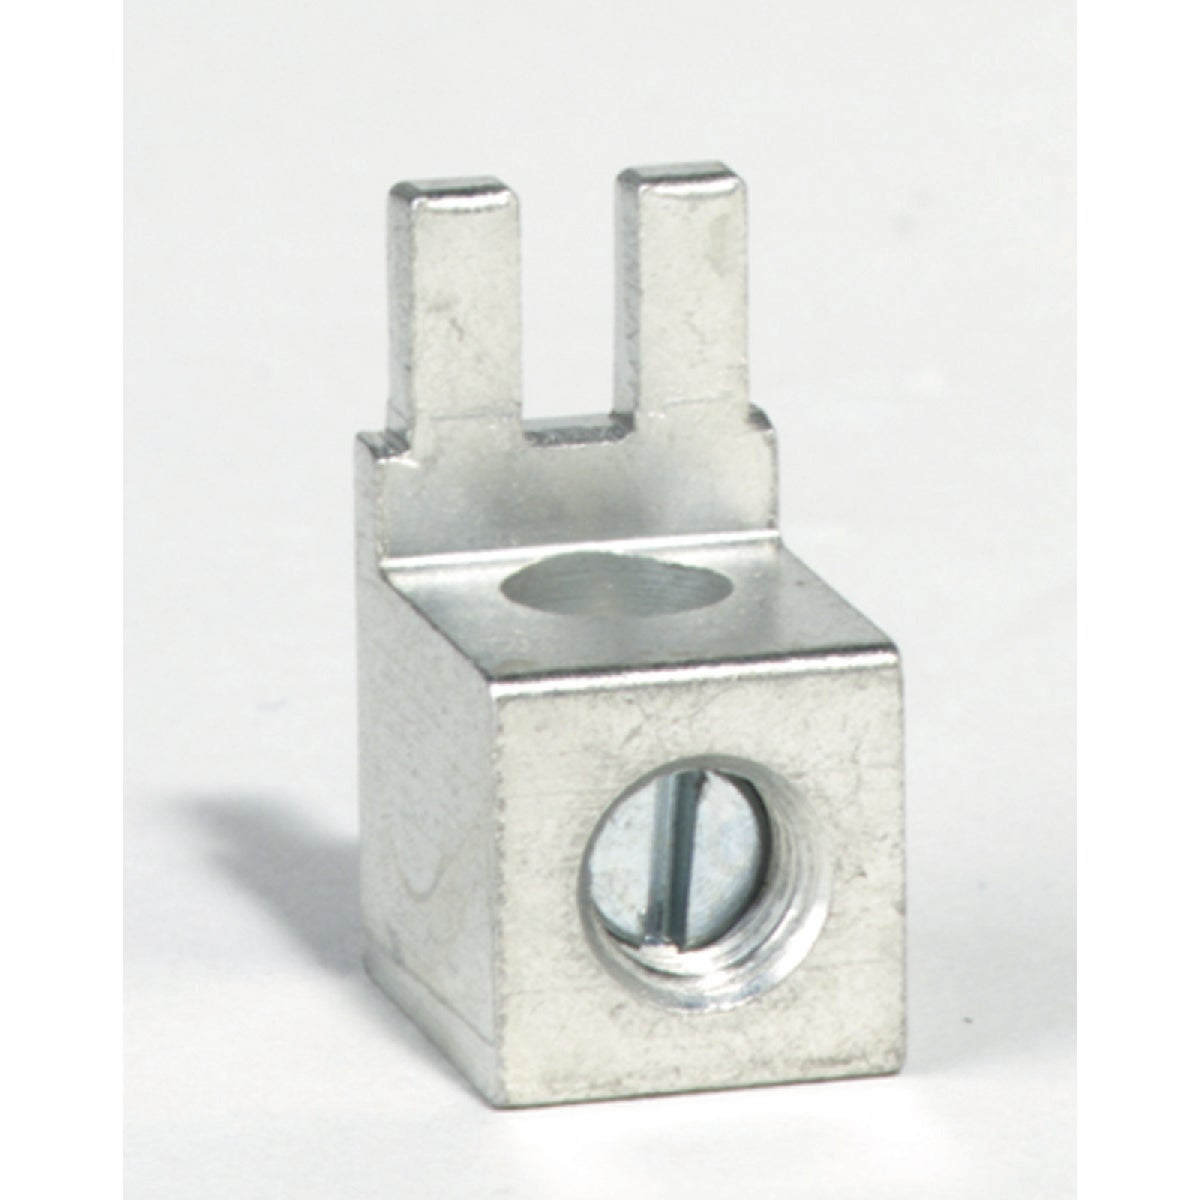 Square D Co. 100A NEUTRAL LUG QO70ANCP